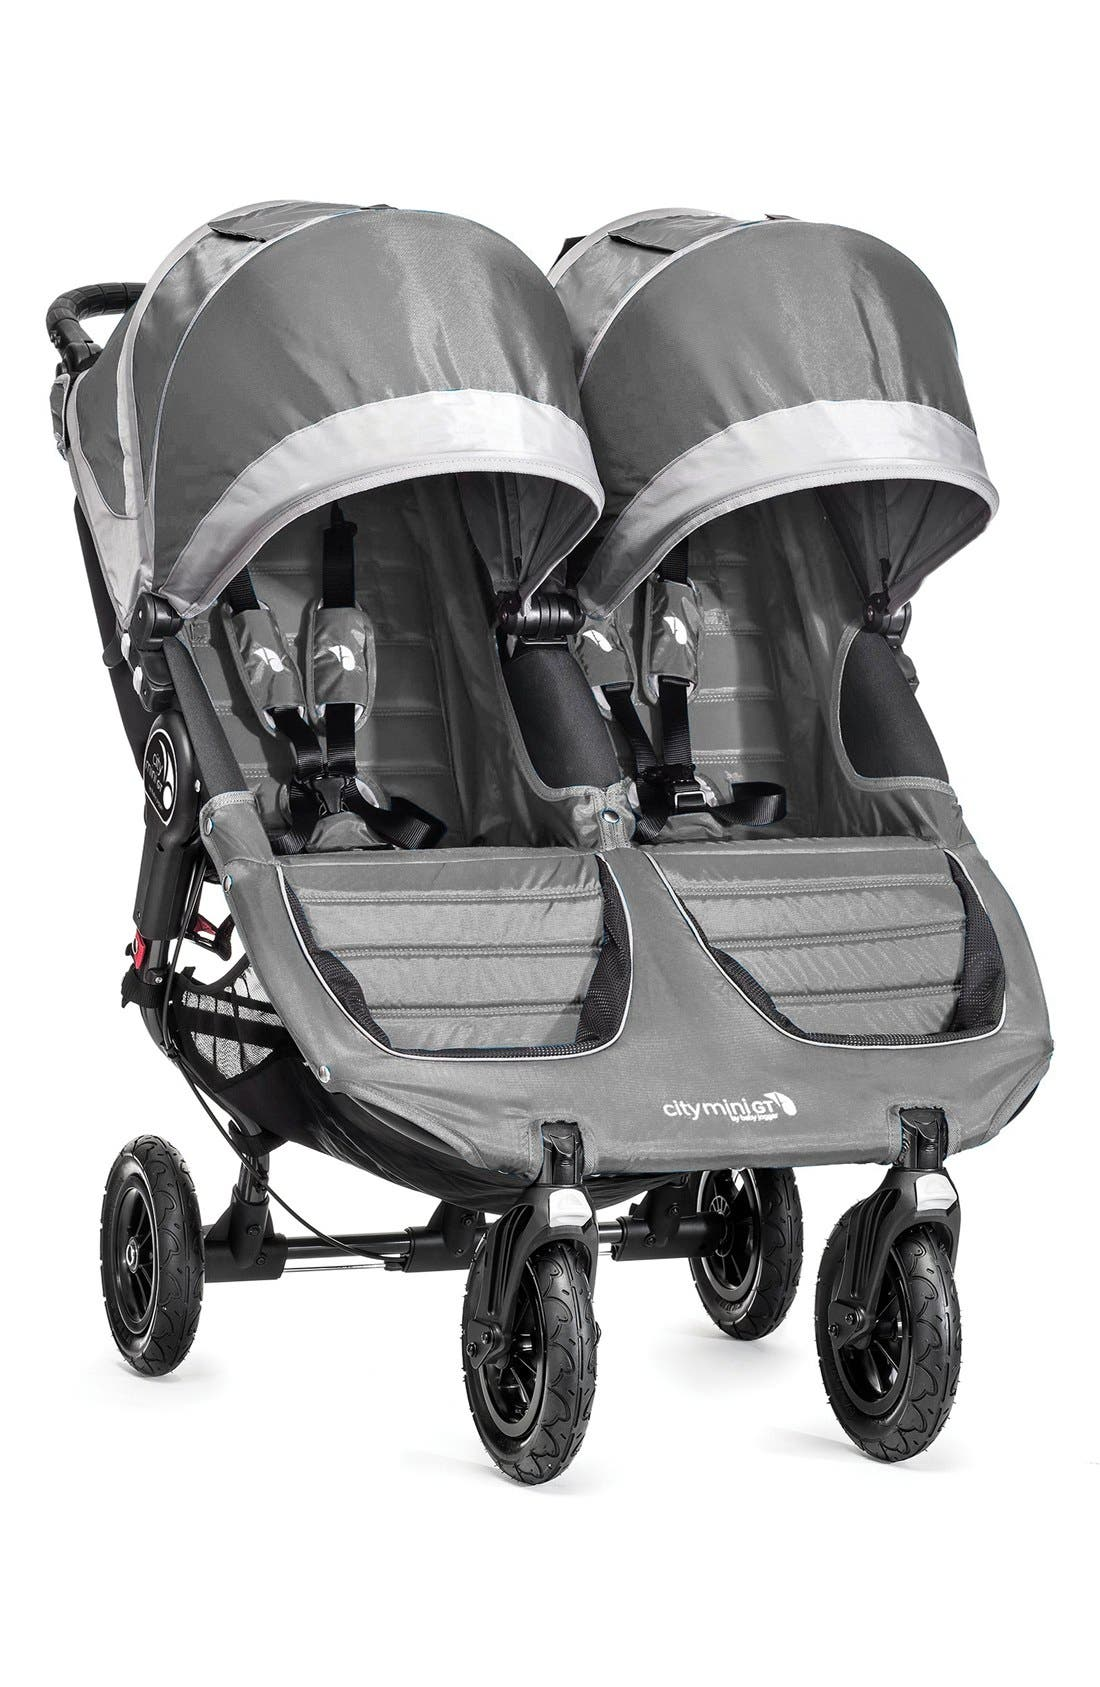 City Mini<sup>®</sup> GT Double Stroller,                             Main thumbnail 1, color,                             Steel Gray